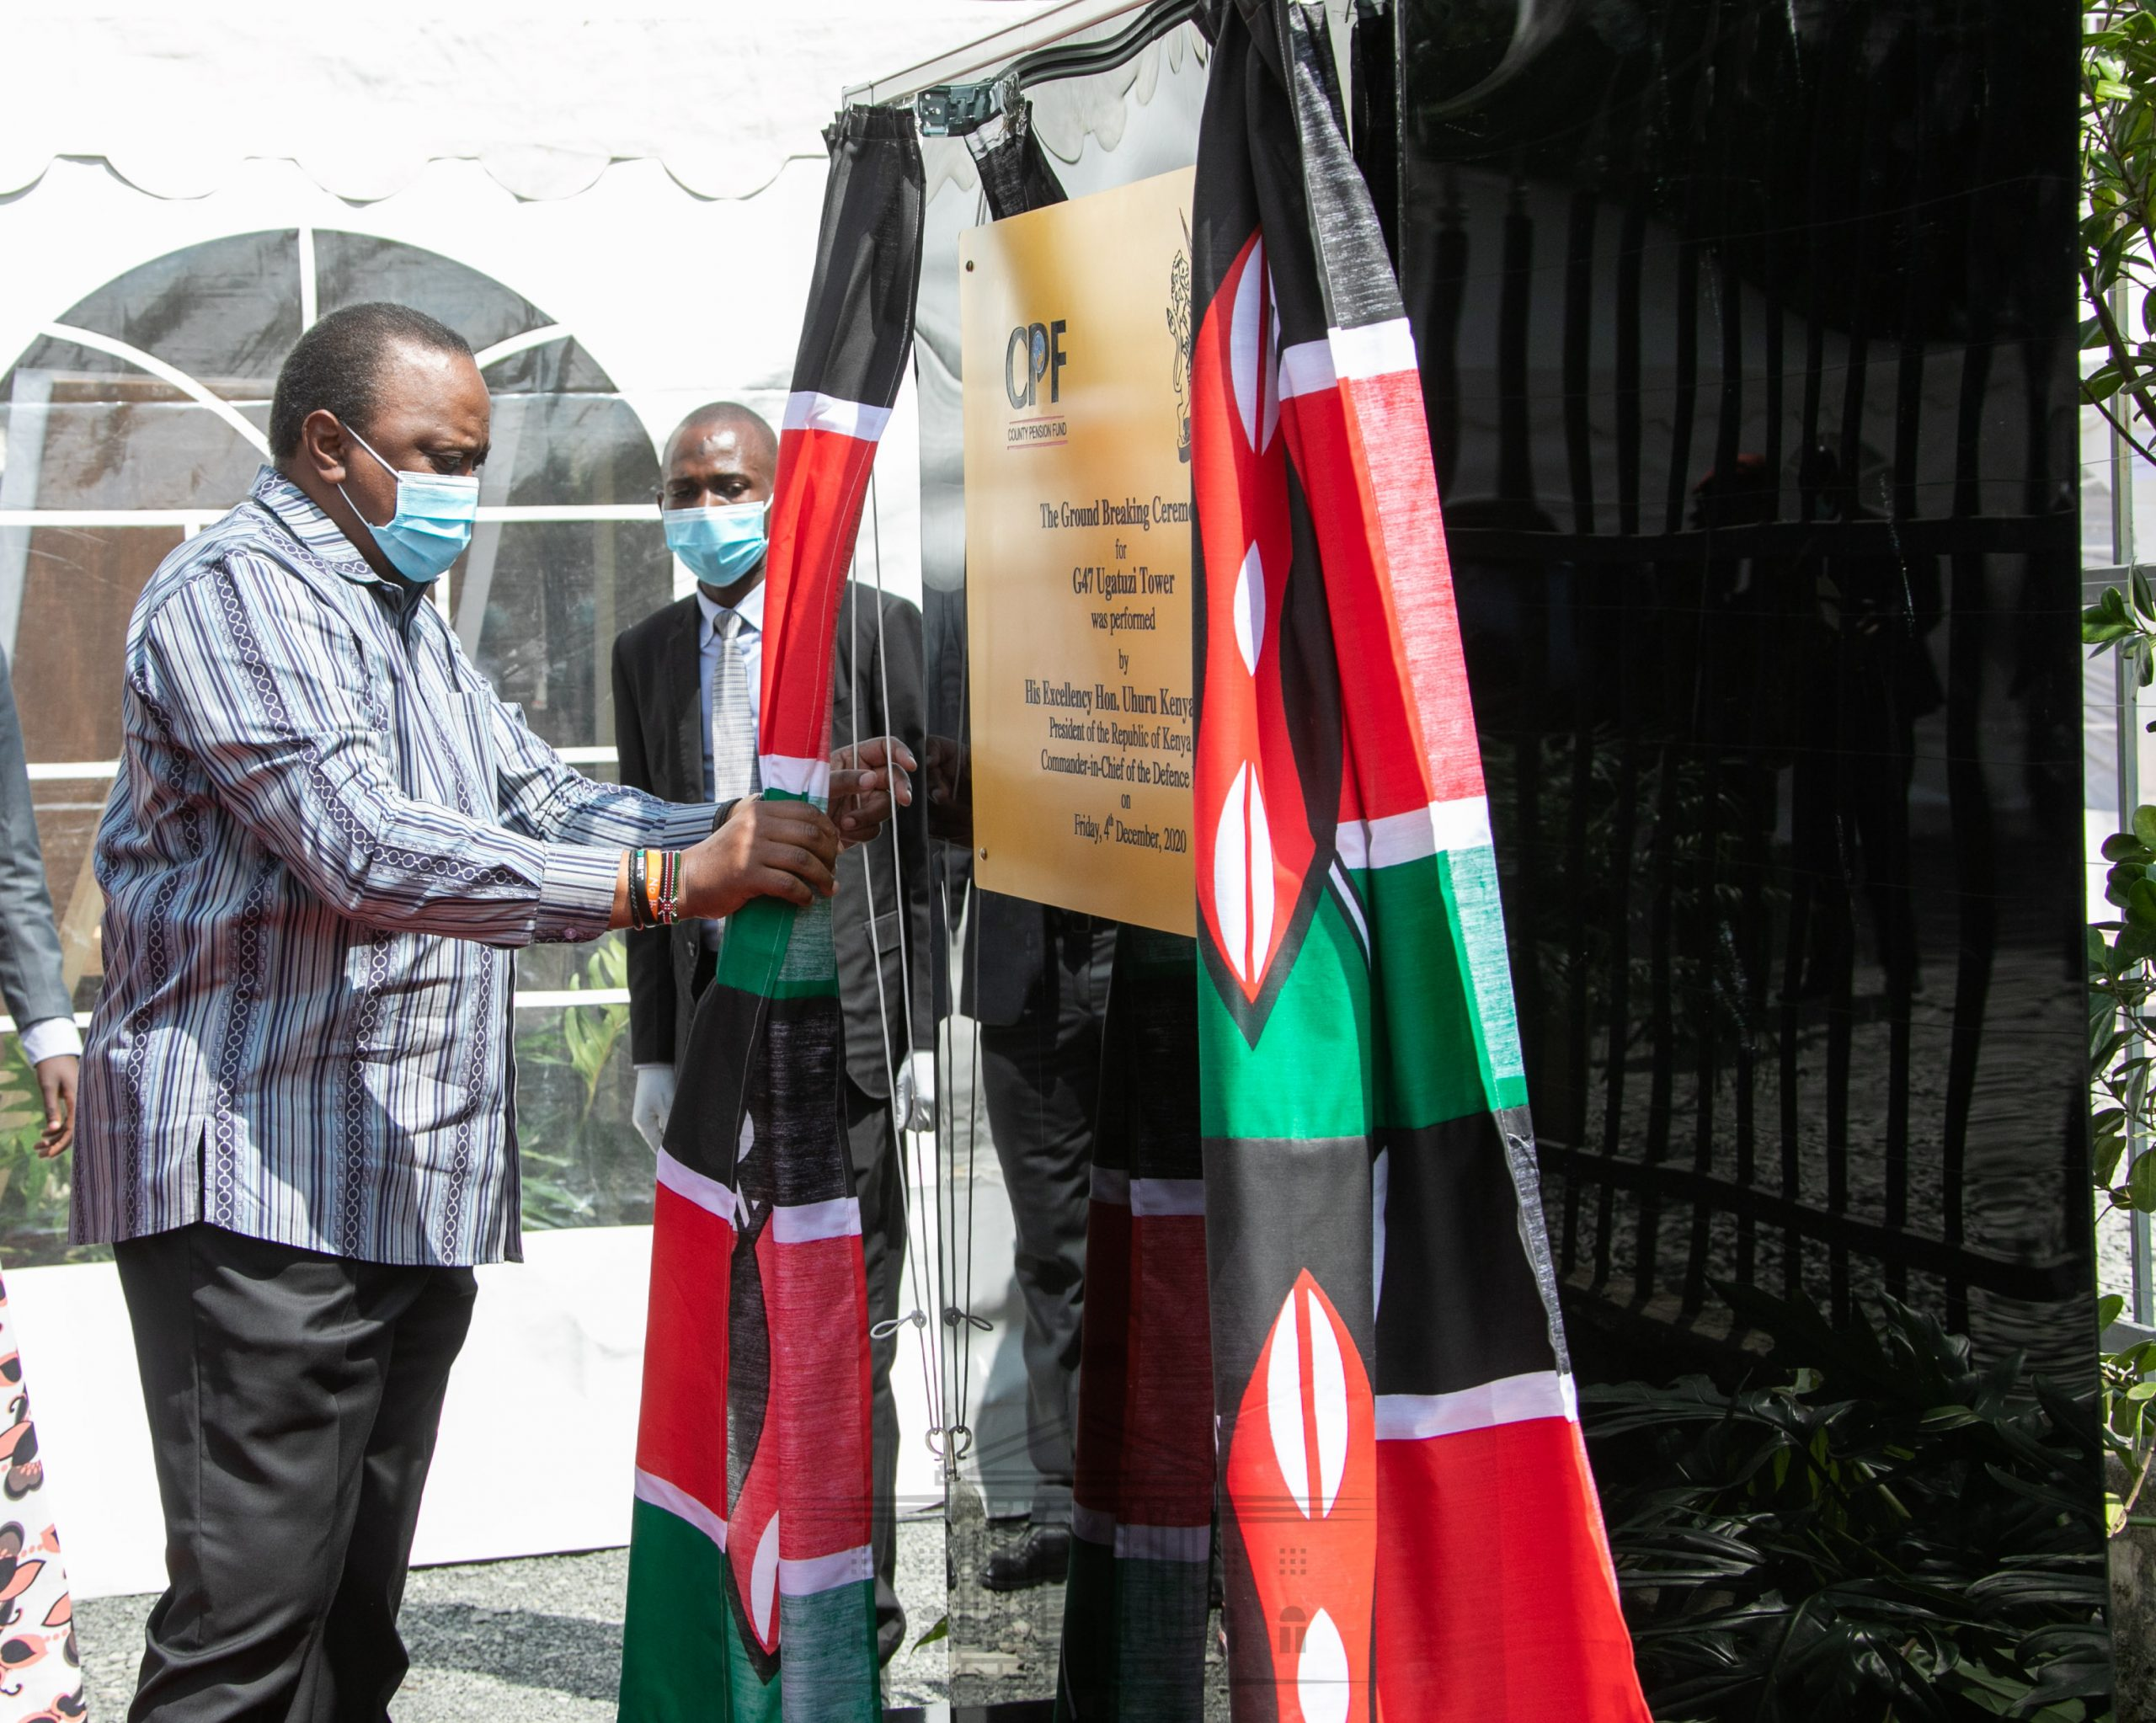 President Uhuru Kenyatta at a groundbreaking ceremony for the G47 Ugatuzi Tower. The 5-0-storey tower could become Africa's tallest building once complete.